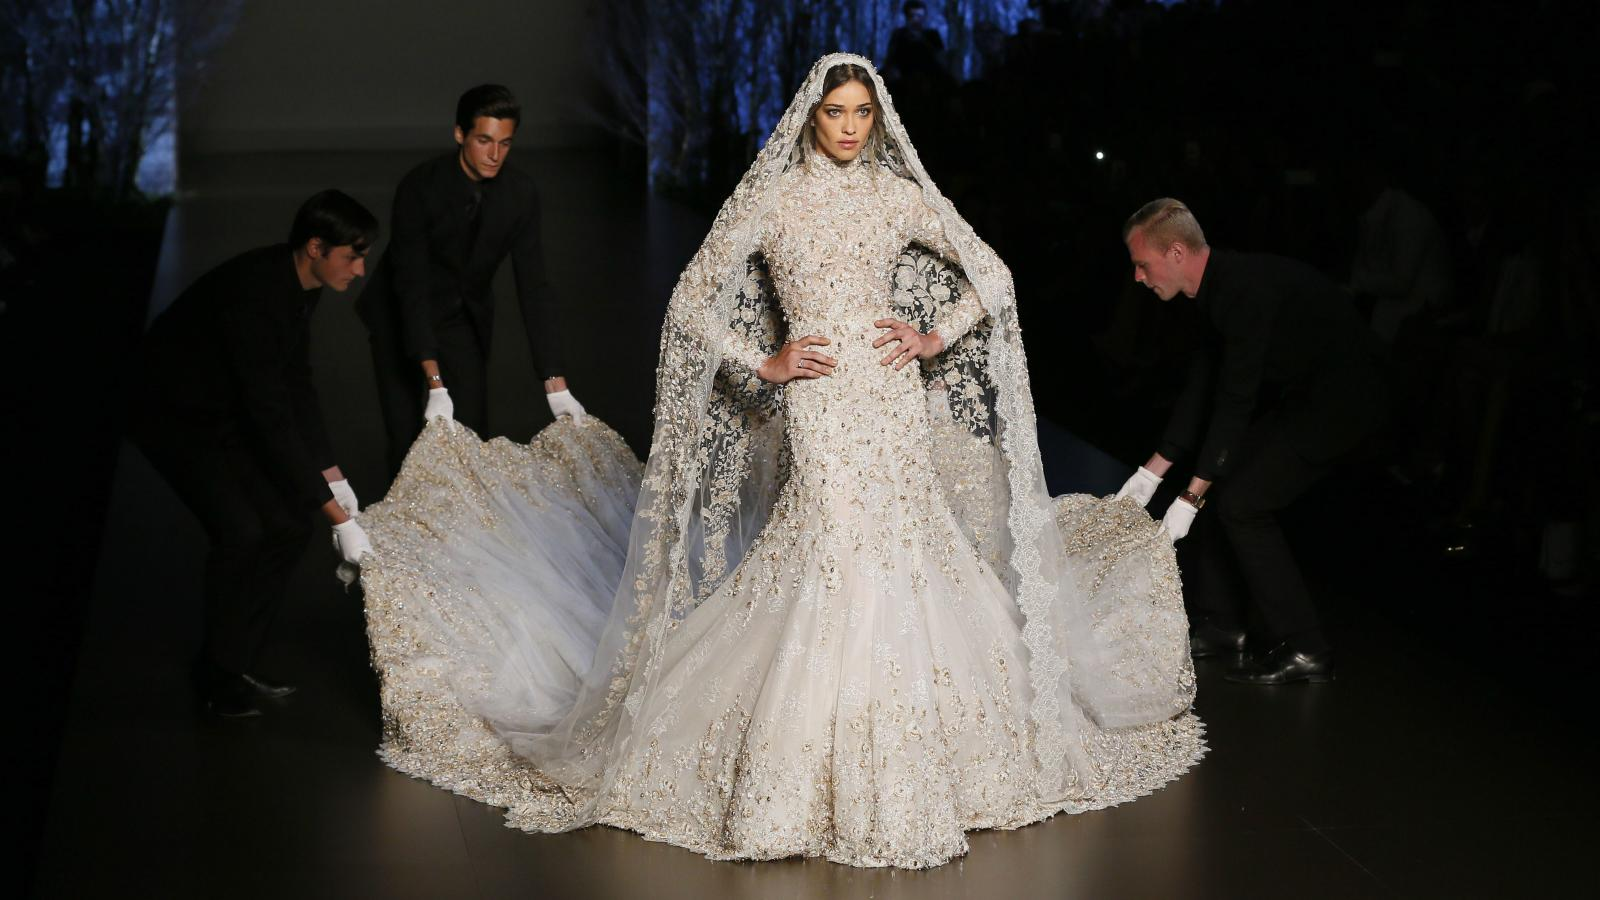 Women Have Discovered A Smart Way To Save A Fortune On Wedding Dress